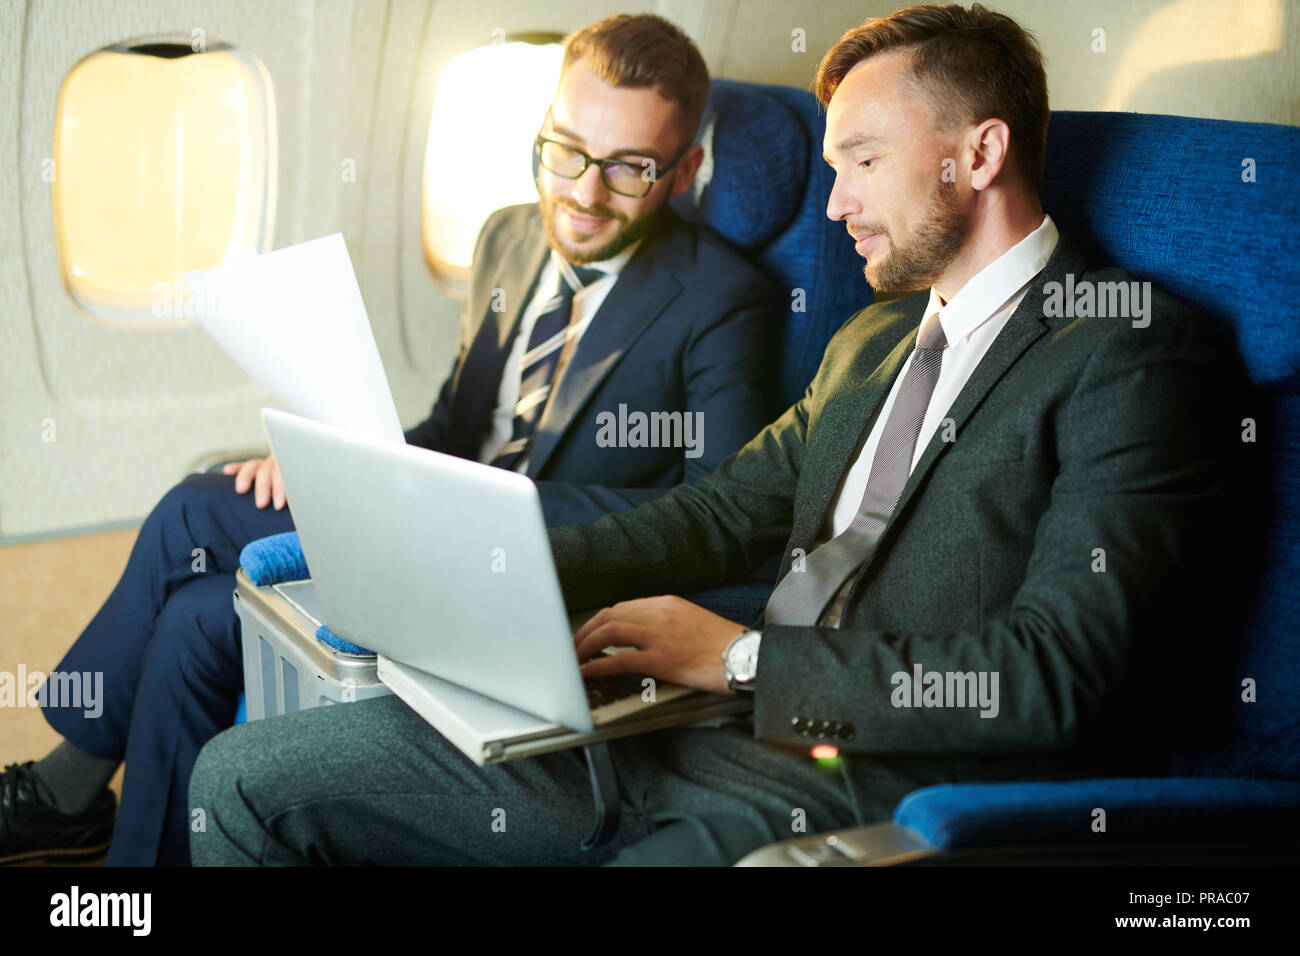 Unrecognizable Businessman in Plane - Stock Image